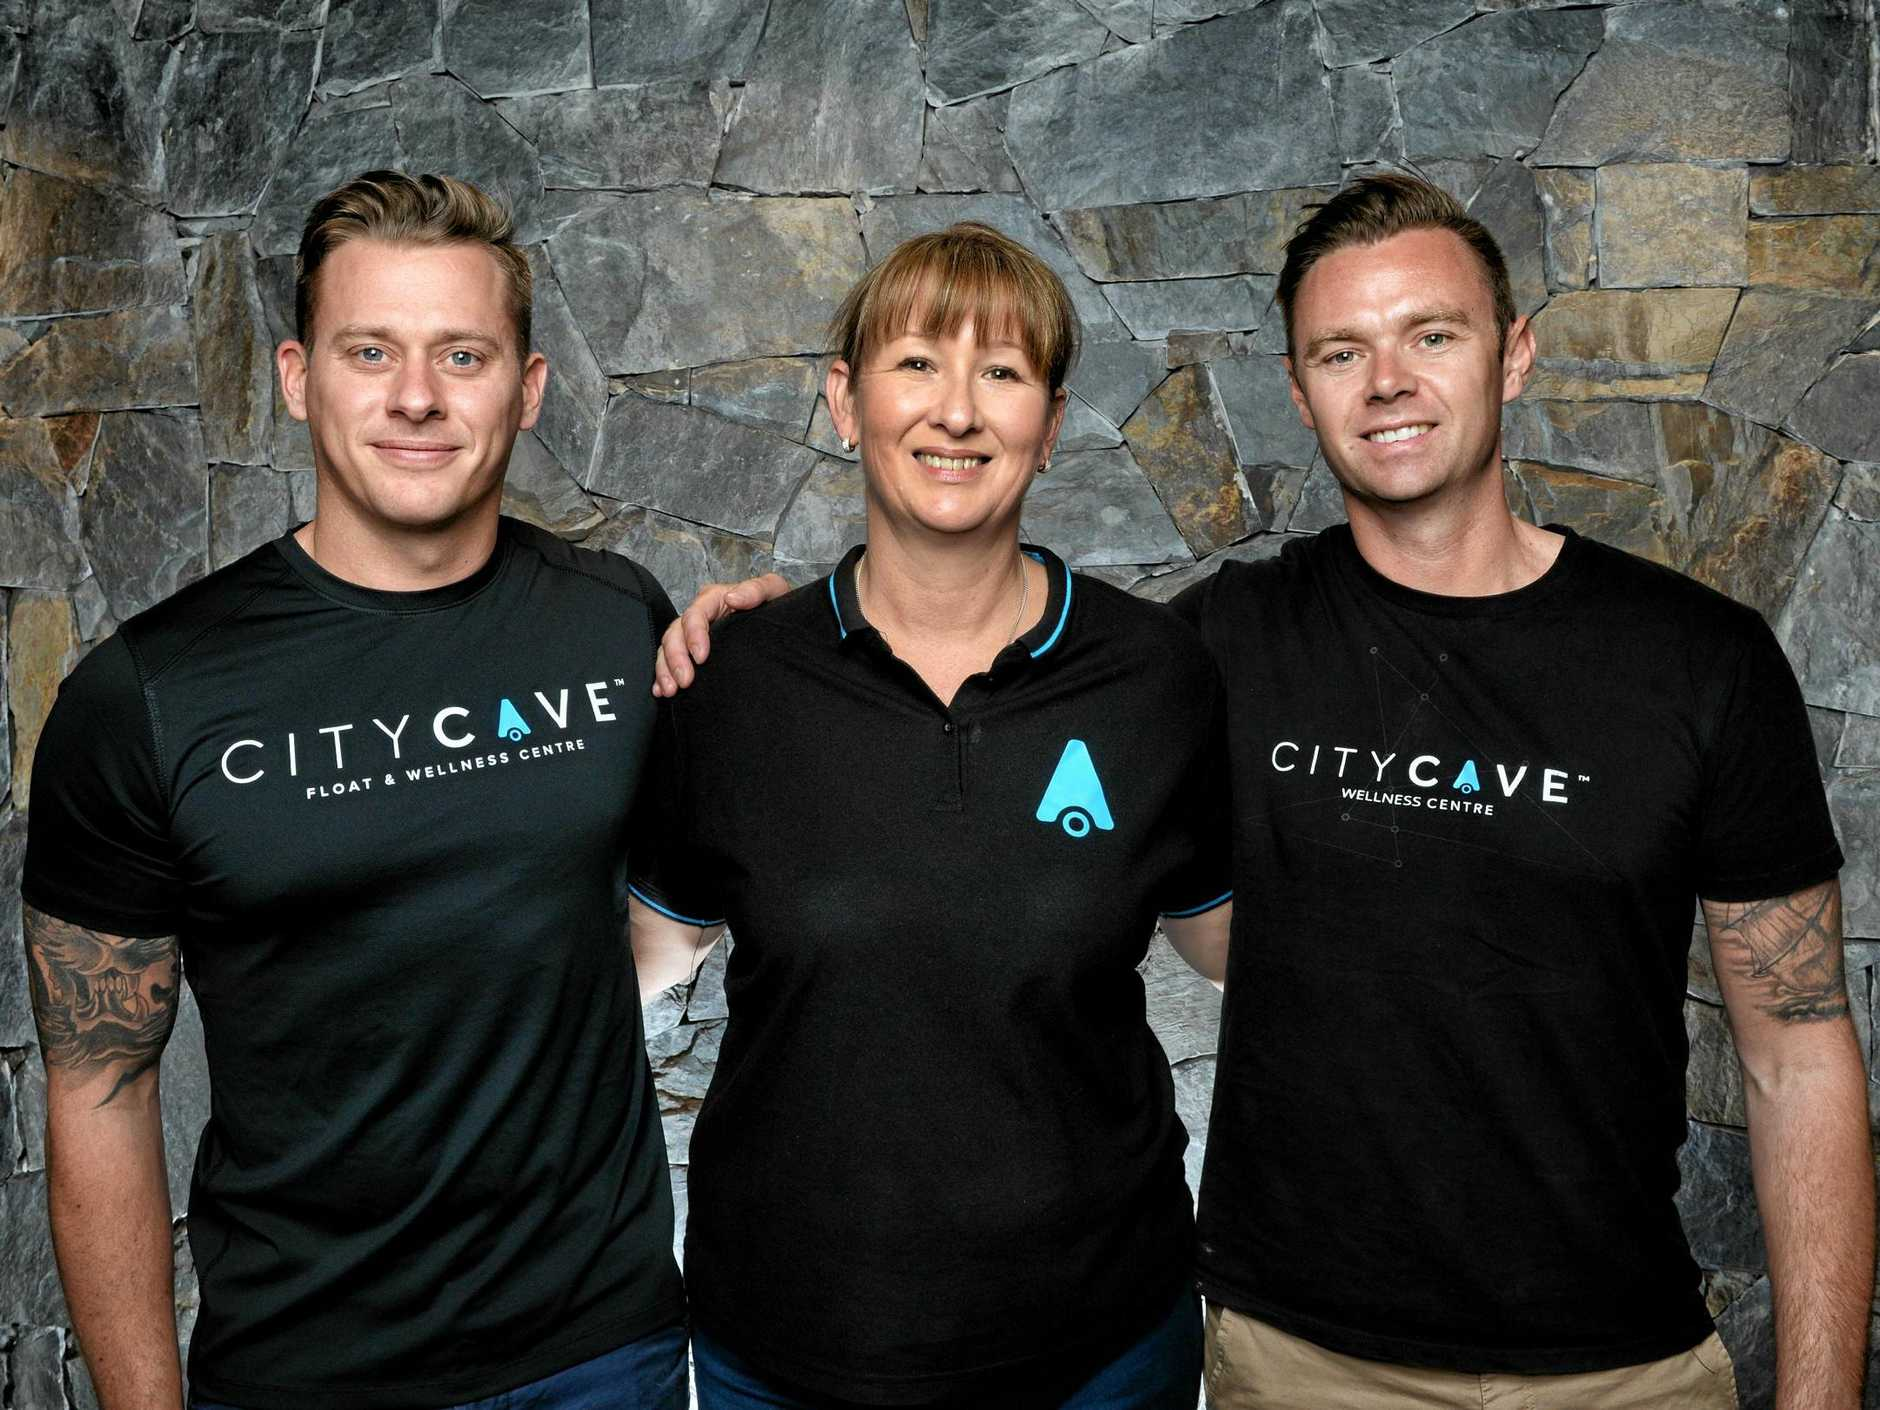 City Cave Ipswich owner Kathy Rees (middle) and City Cave founders Jeremy Hassell and Tim Butters.